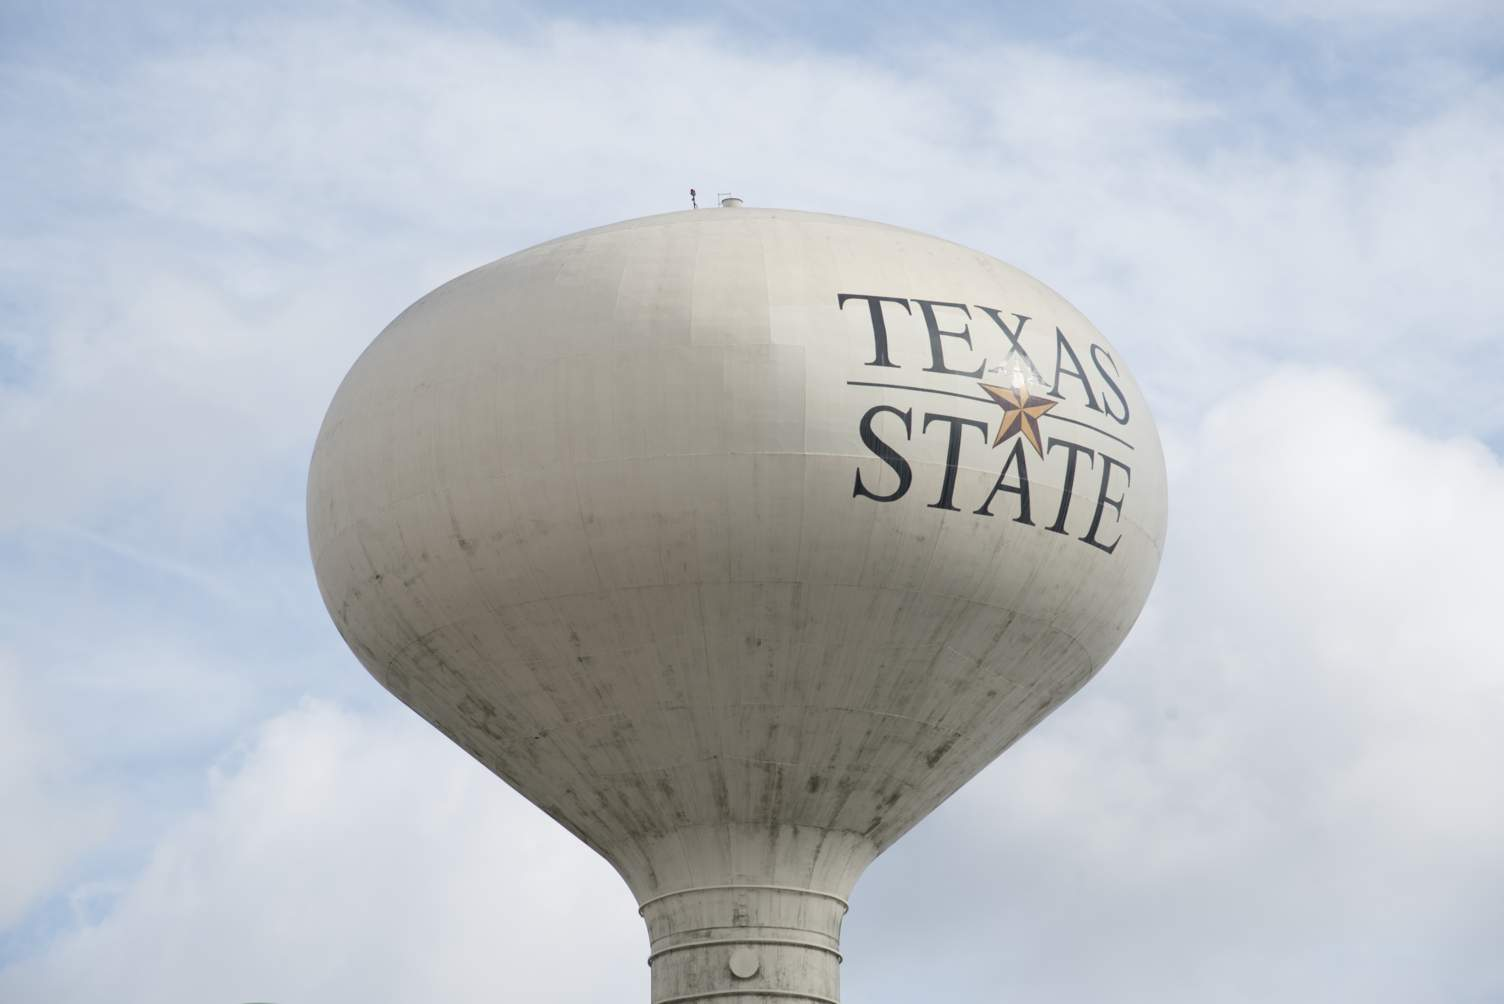 Texas State water tower